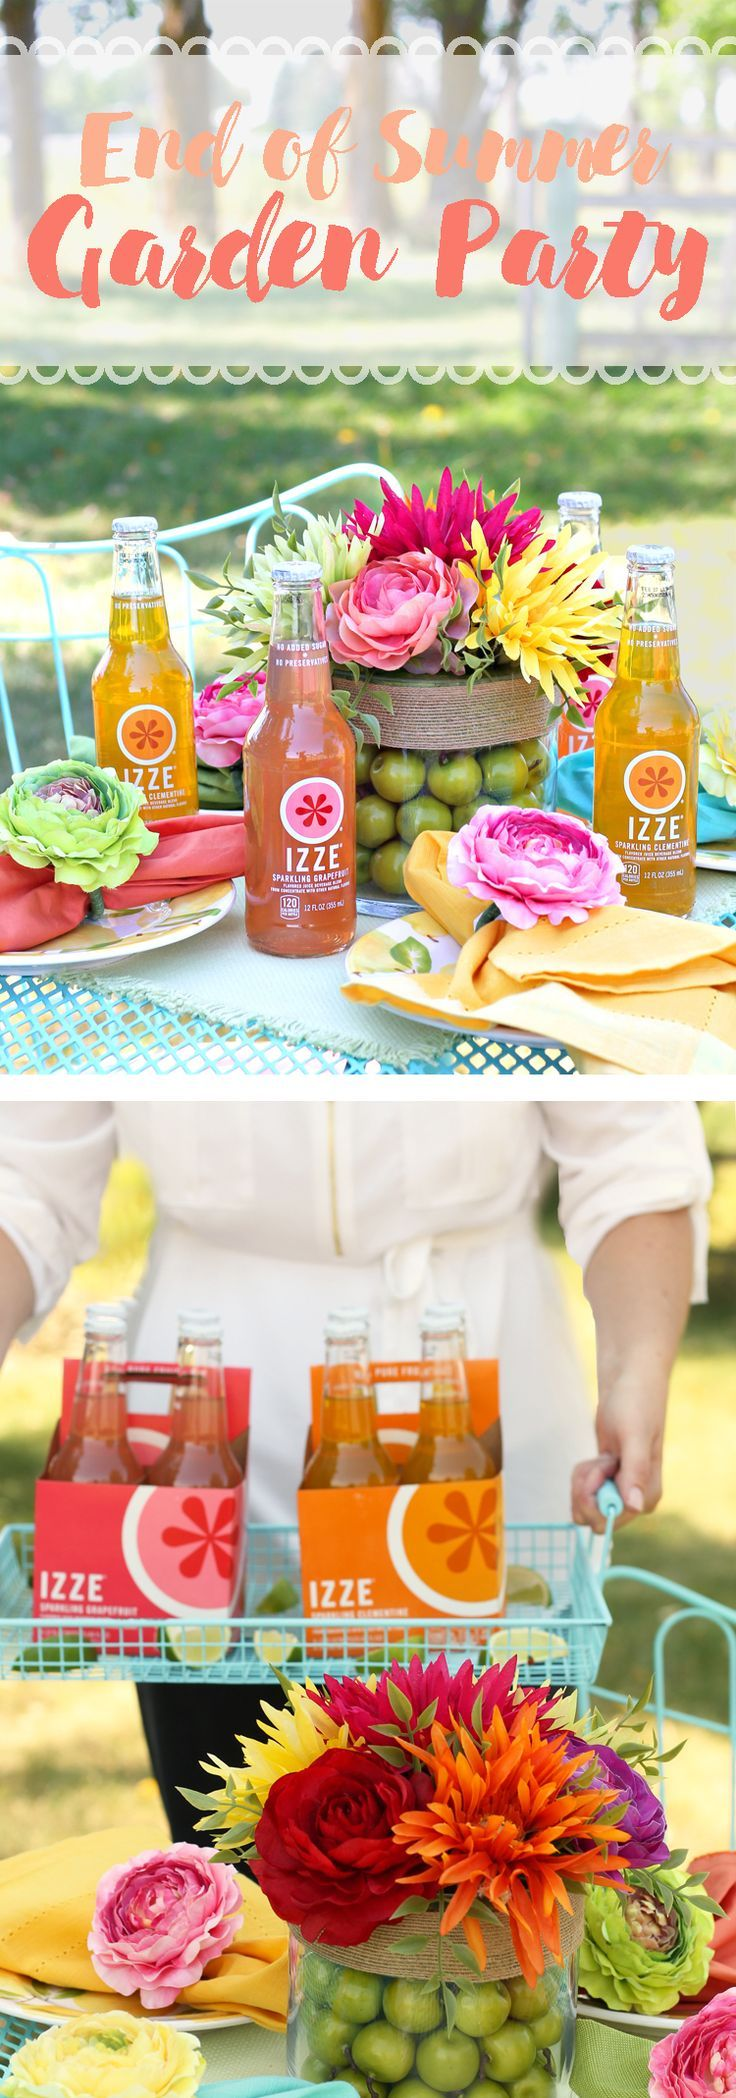 A colorful and simple end of summer garden party. Pretty tablescape perfect for a girls night in. #friendsdaynight #ad @izzeofficial